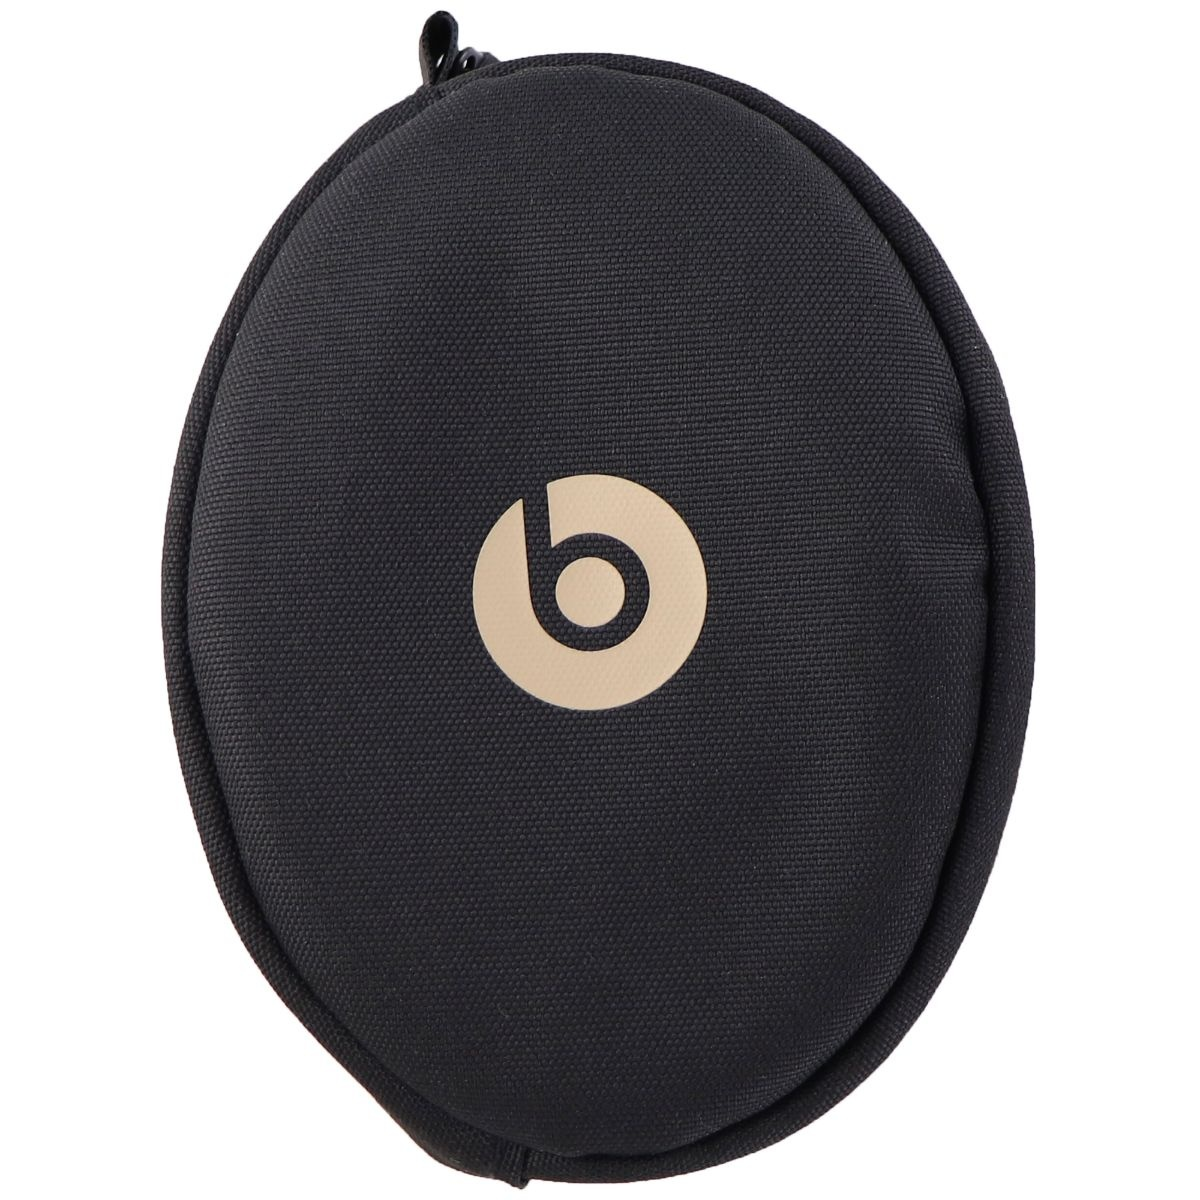 OEM Beats Carry Case for Beats Solo 3 - Toffee